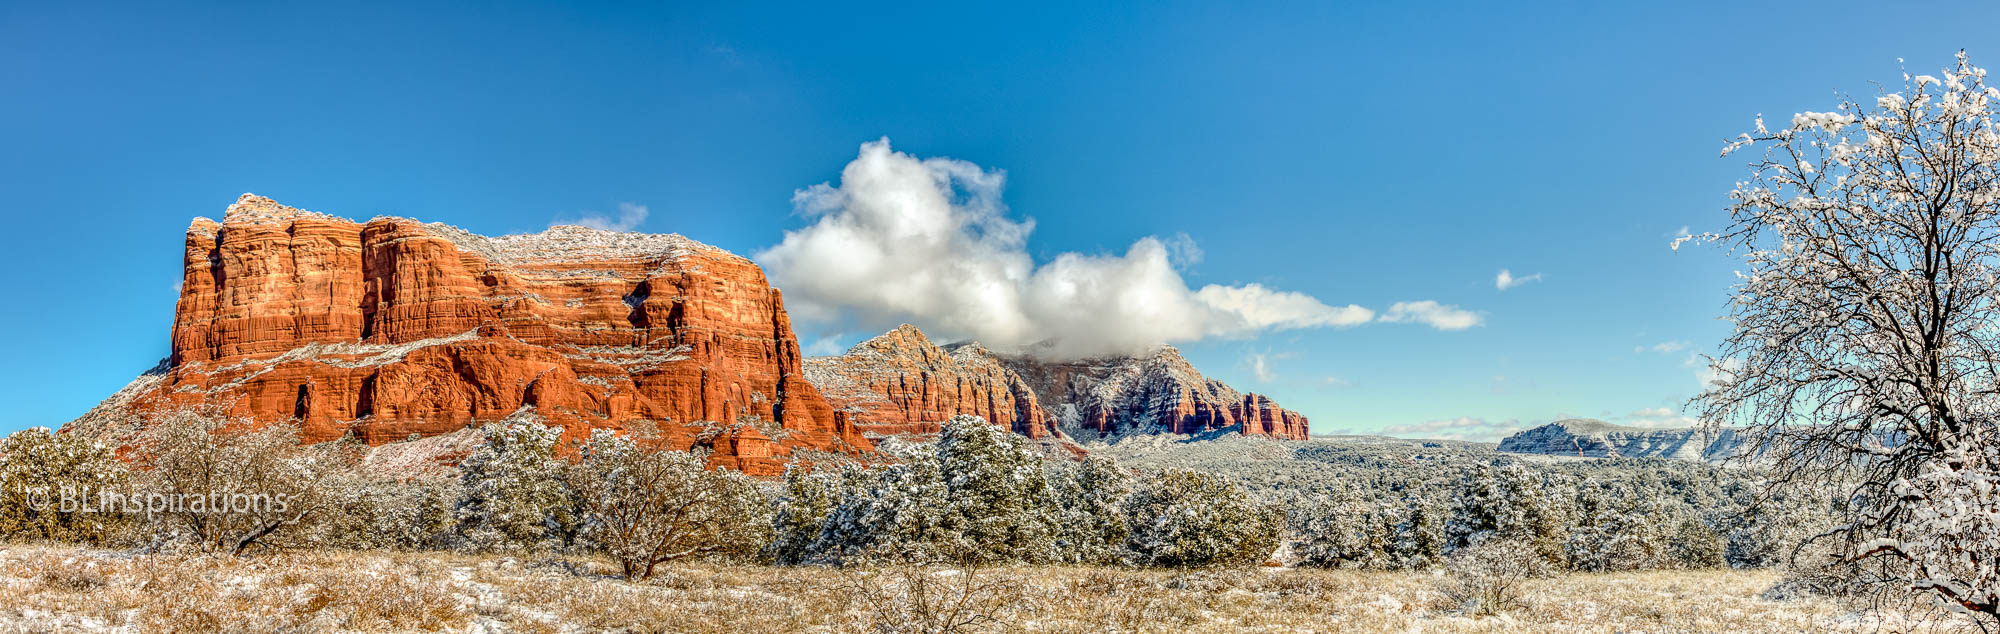 Courthouse Butte HDR Panorama 2